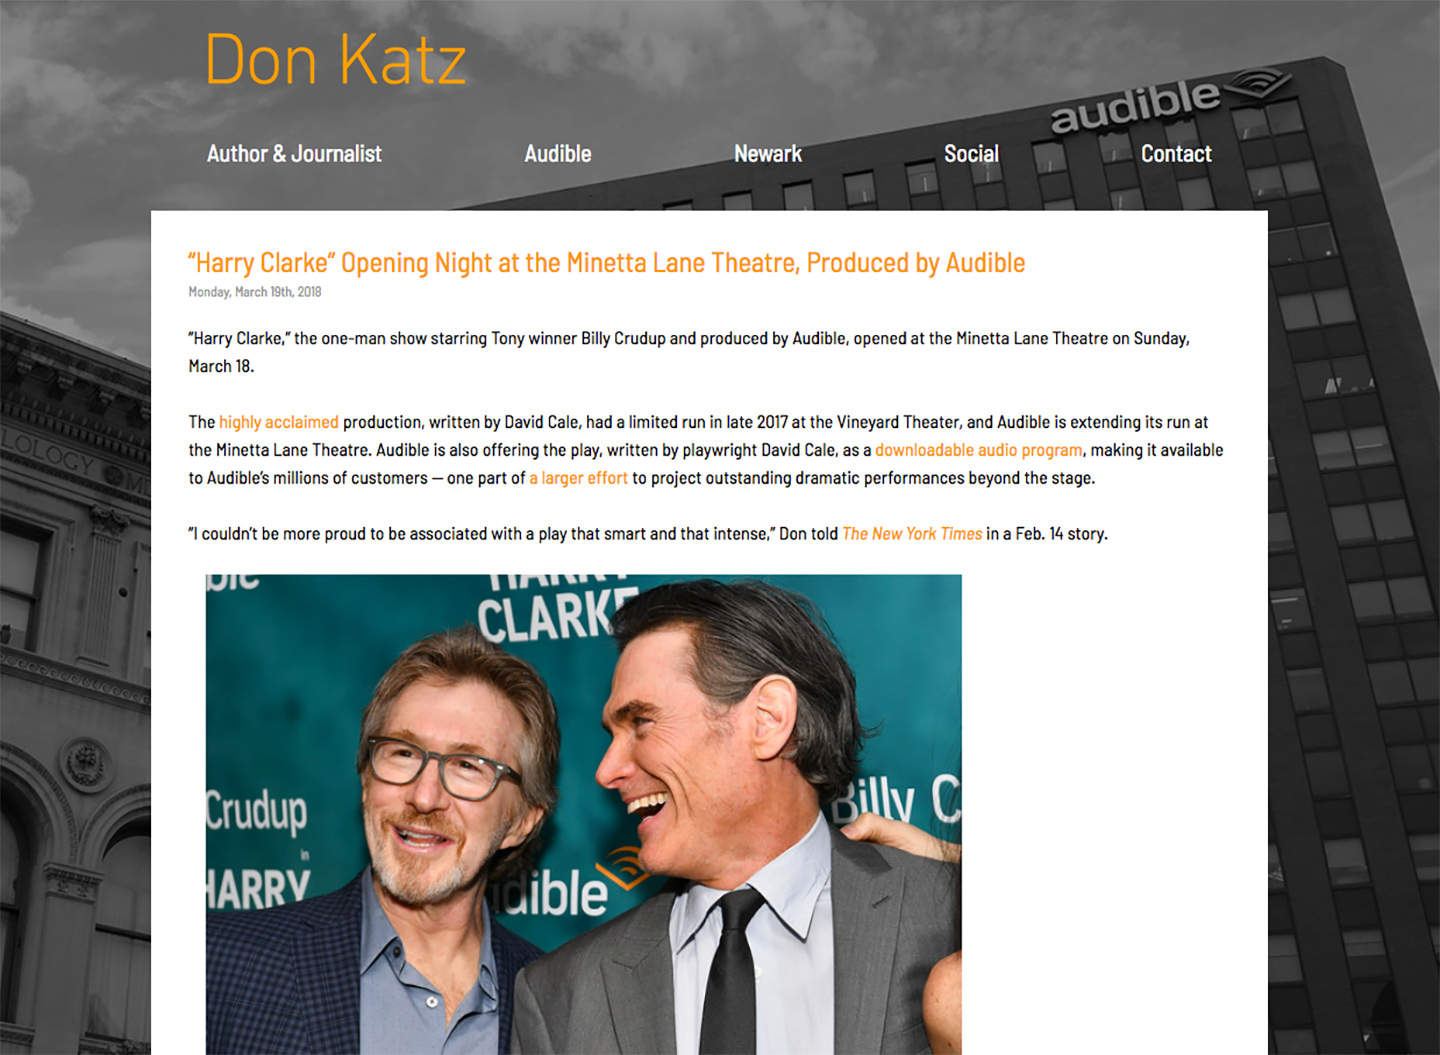 Donald Katz: Home page and News Feed